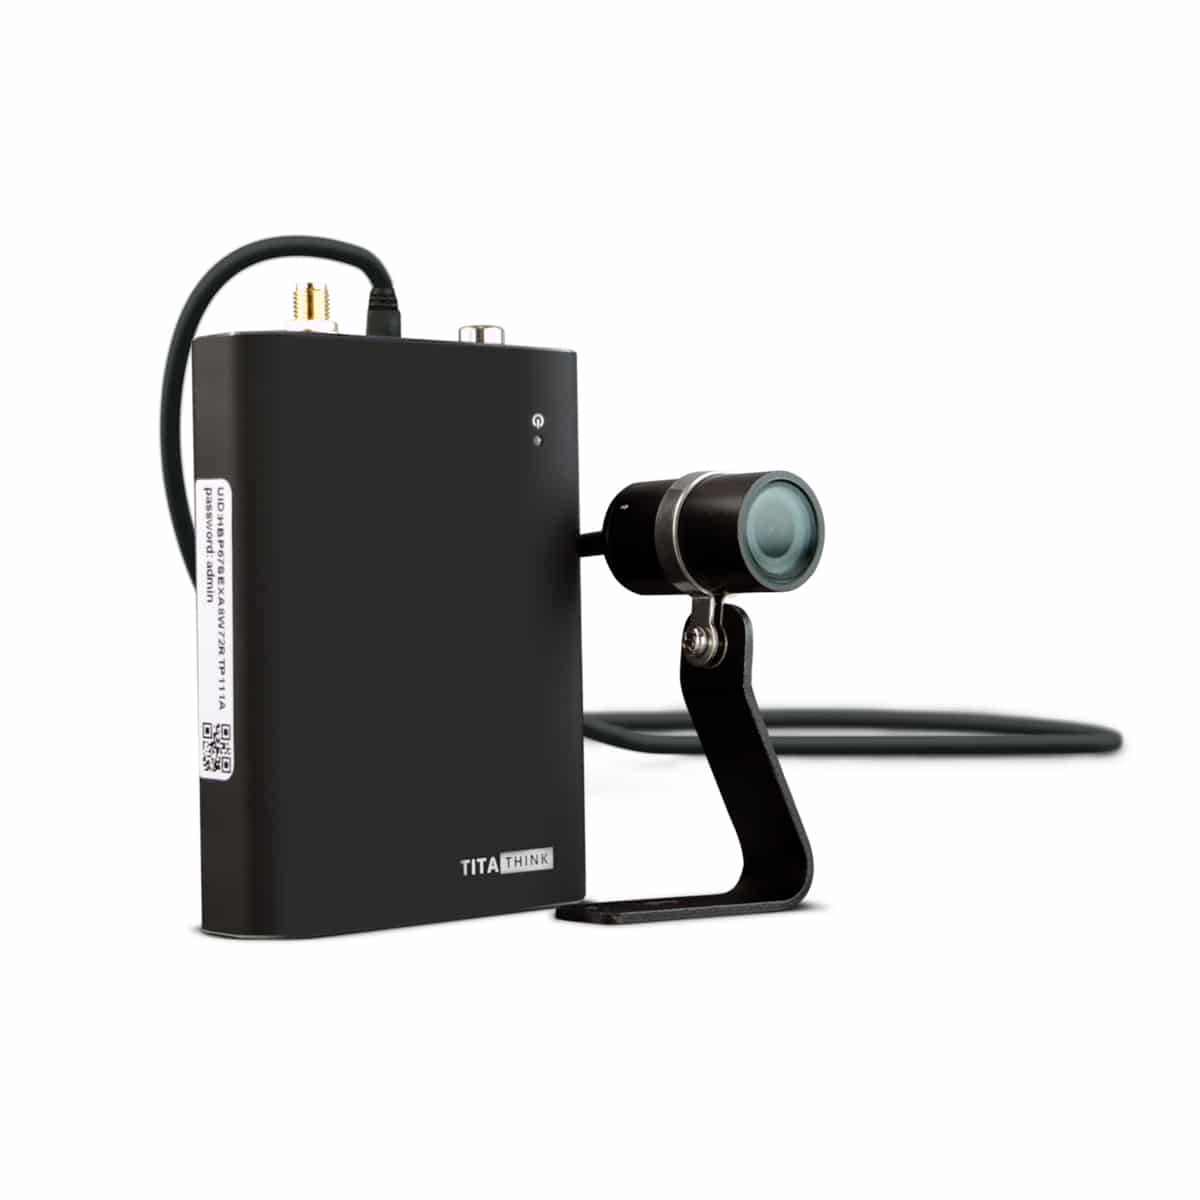 Wifi Camera That Works With Iphone